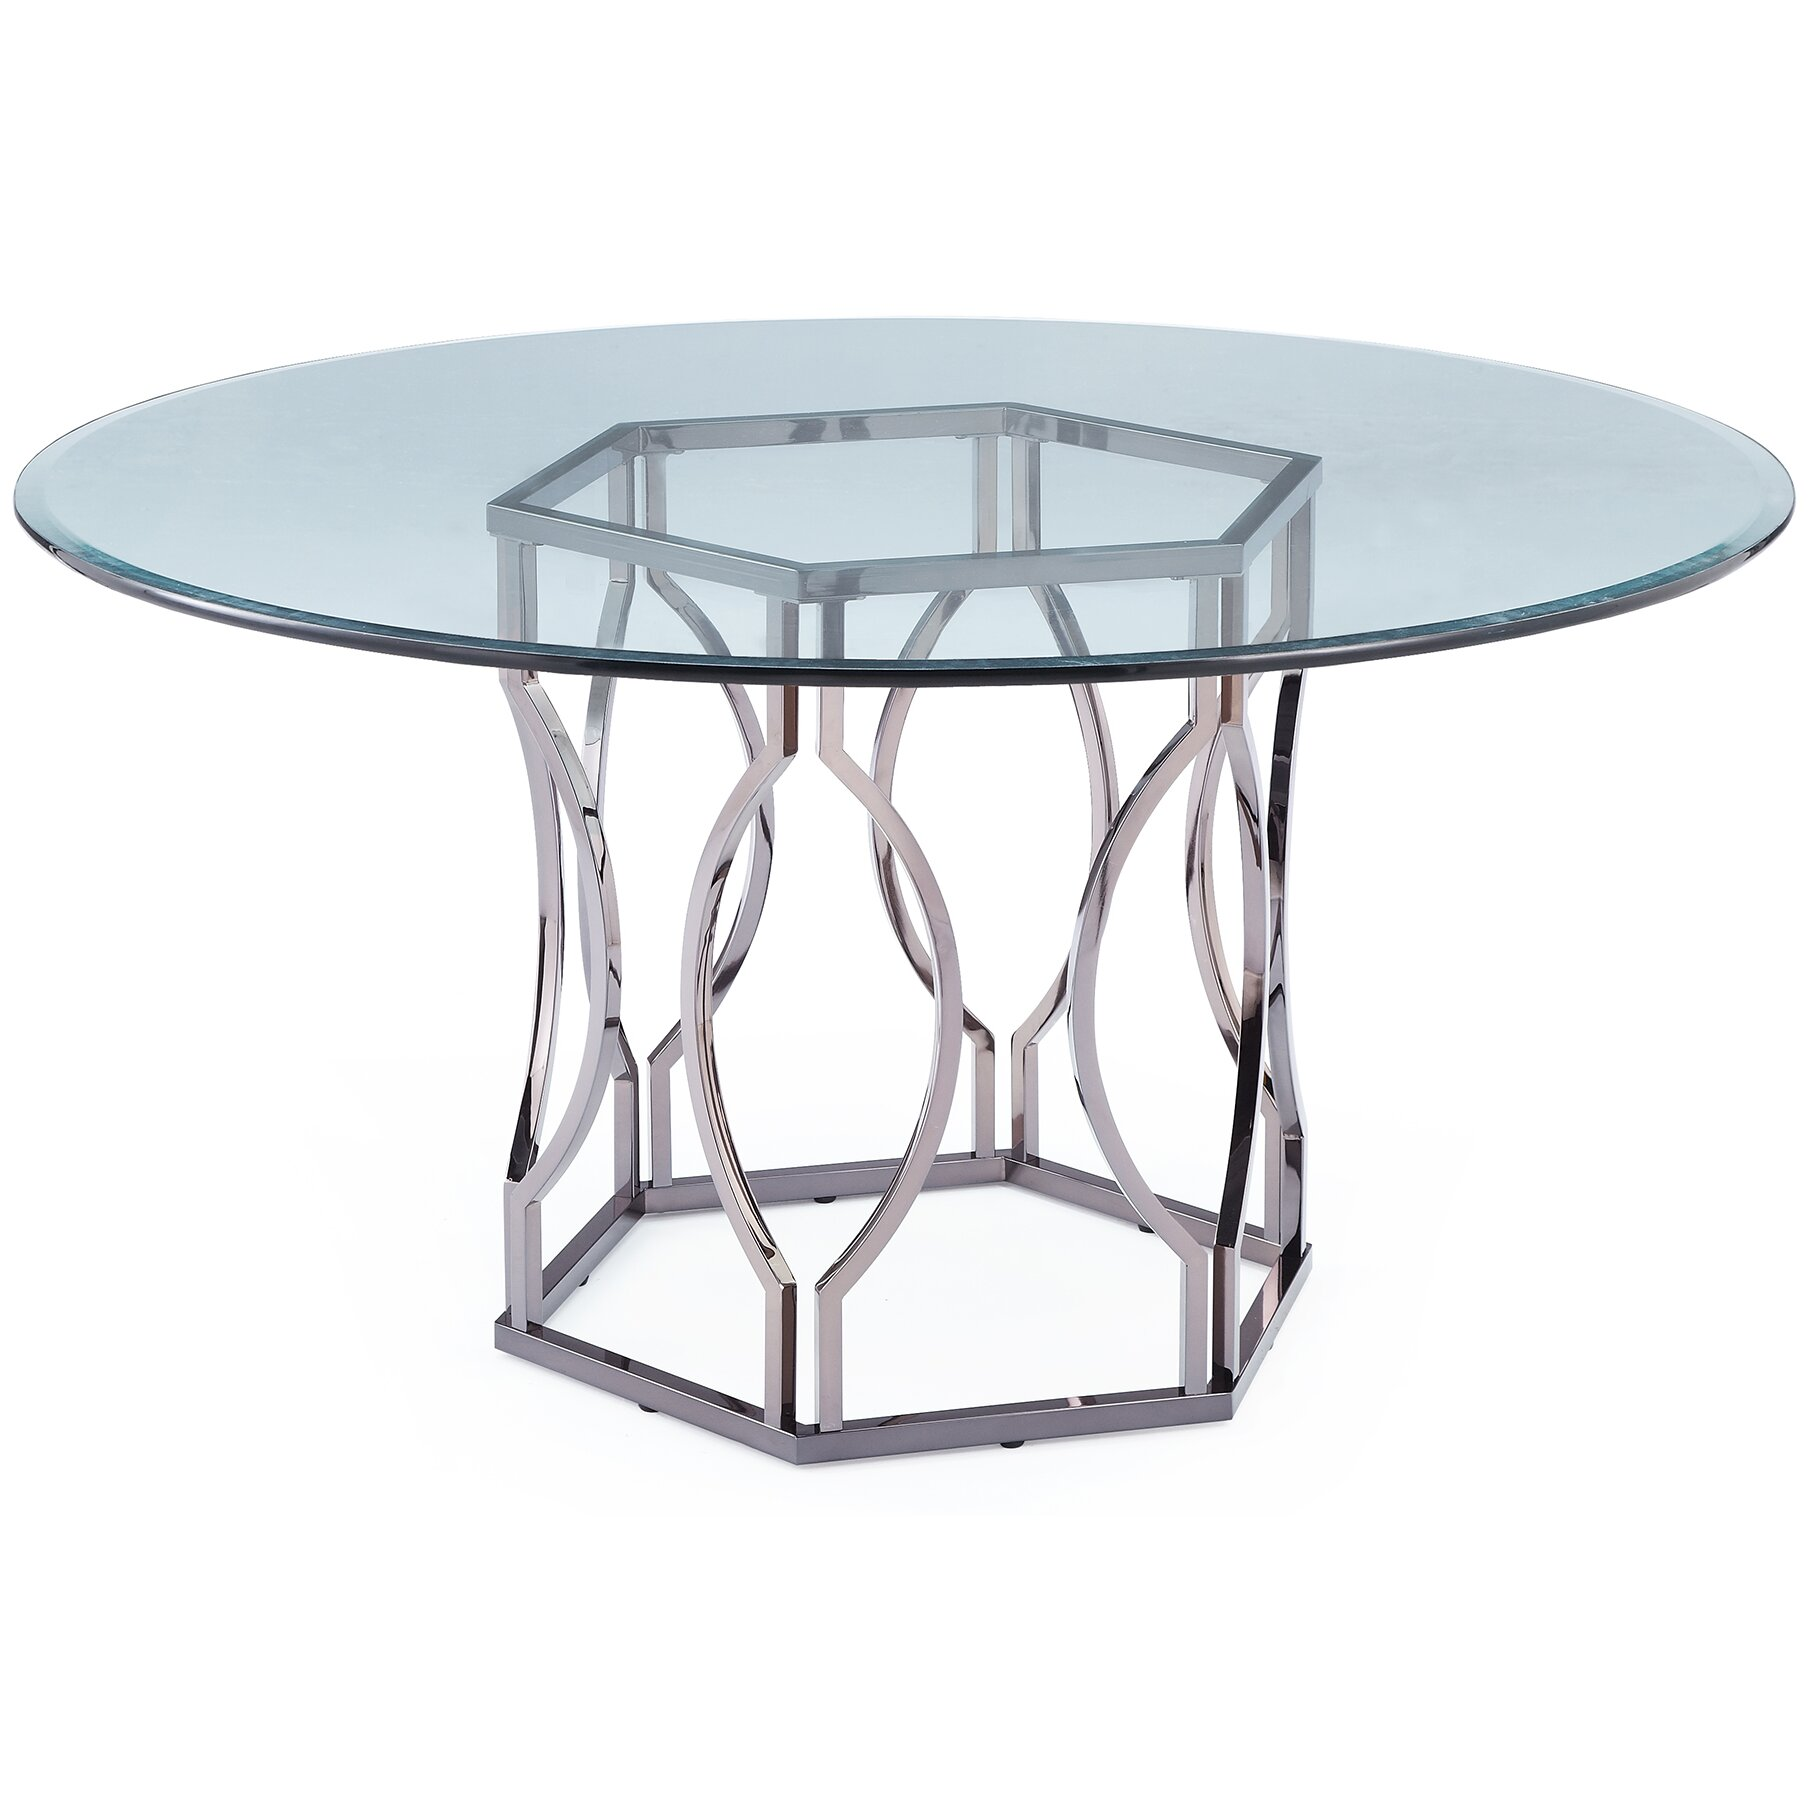 Mercer41 viggo round glass dining table reviews wayfair Round glass dining table